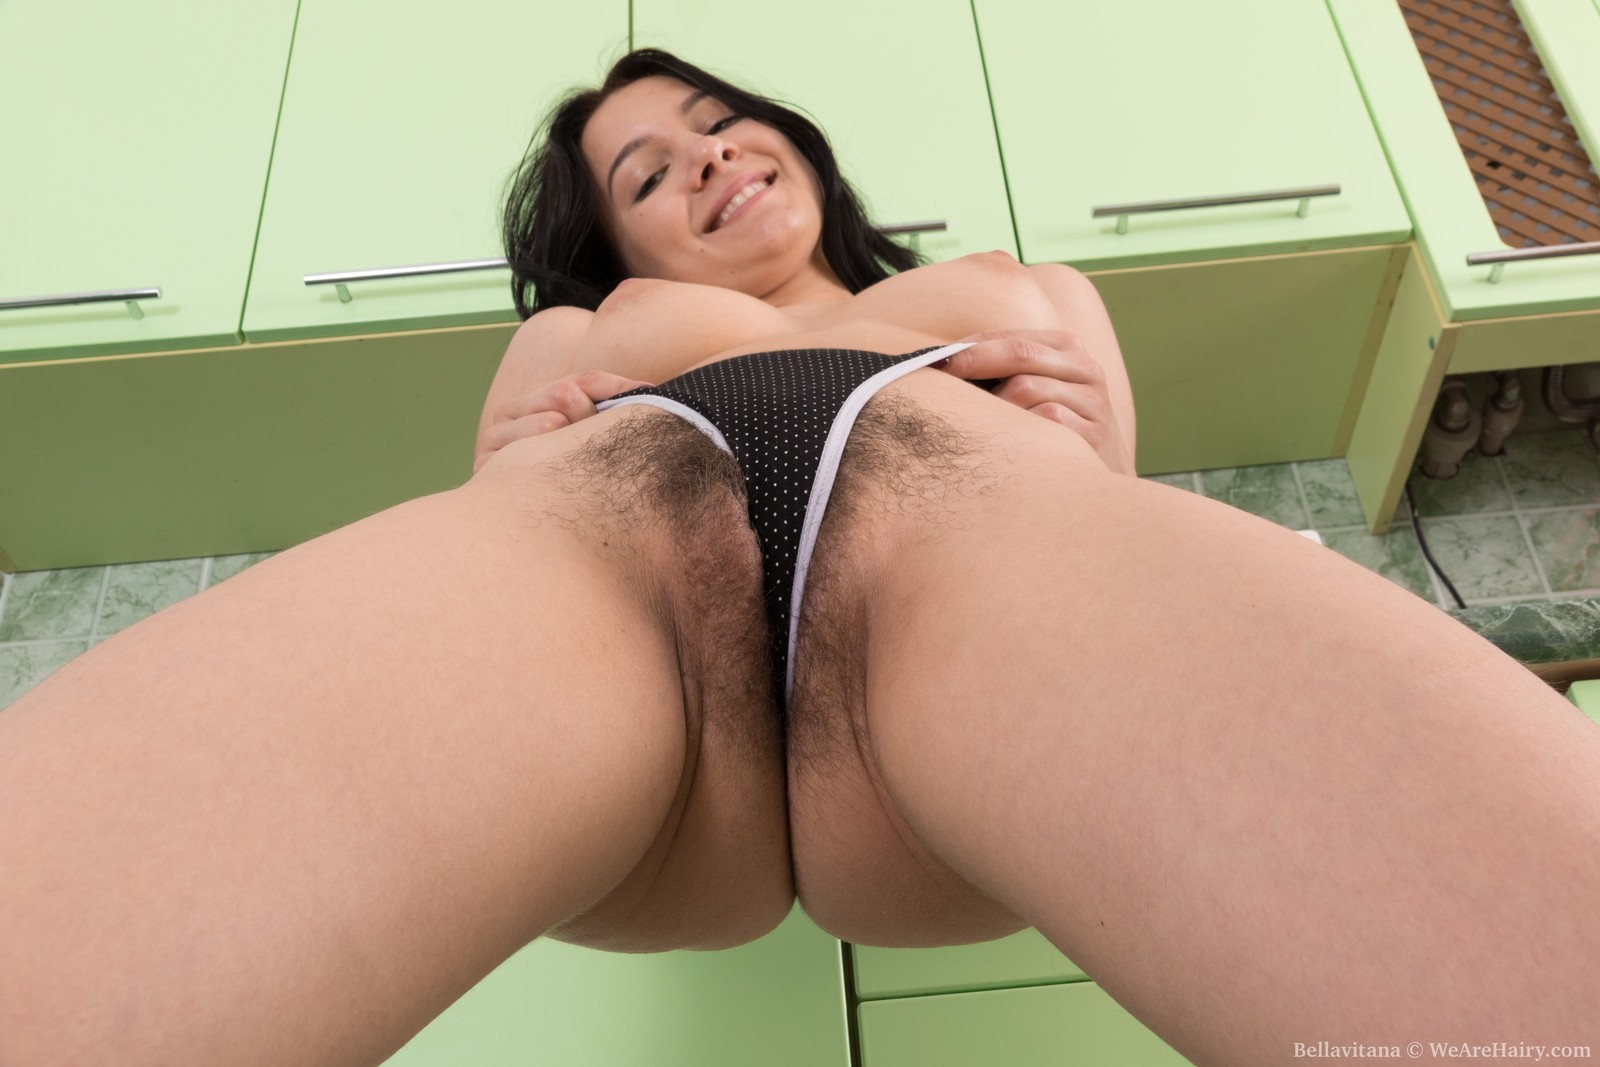 Bellavitana masturbates and strips in her kitchen